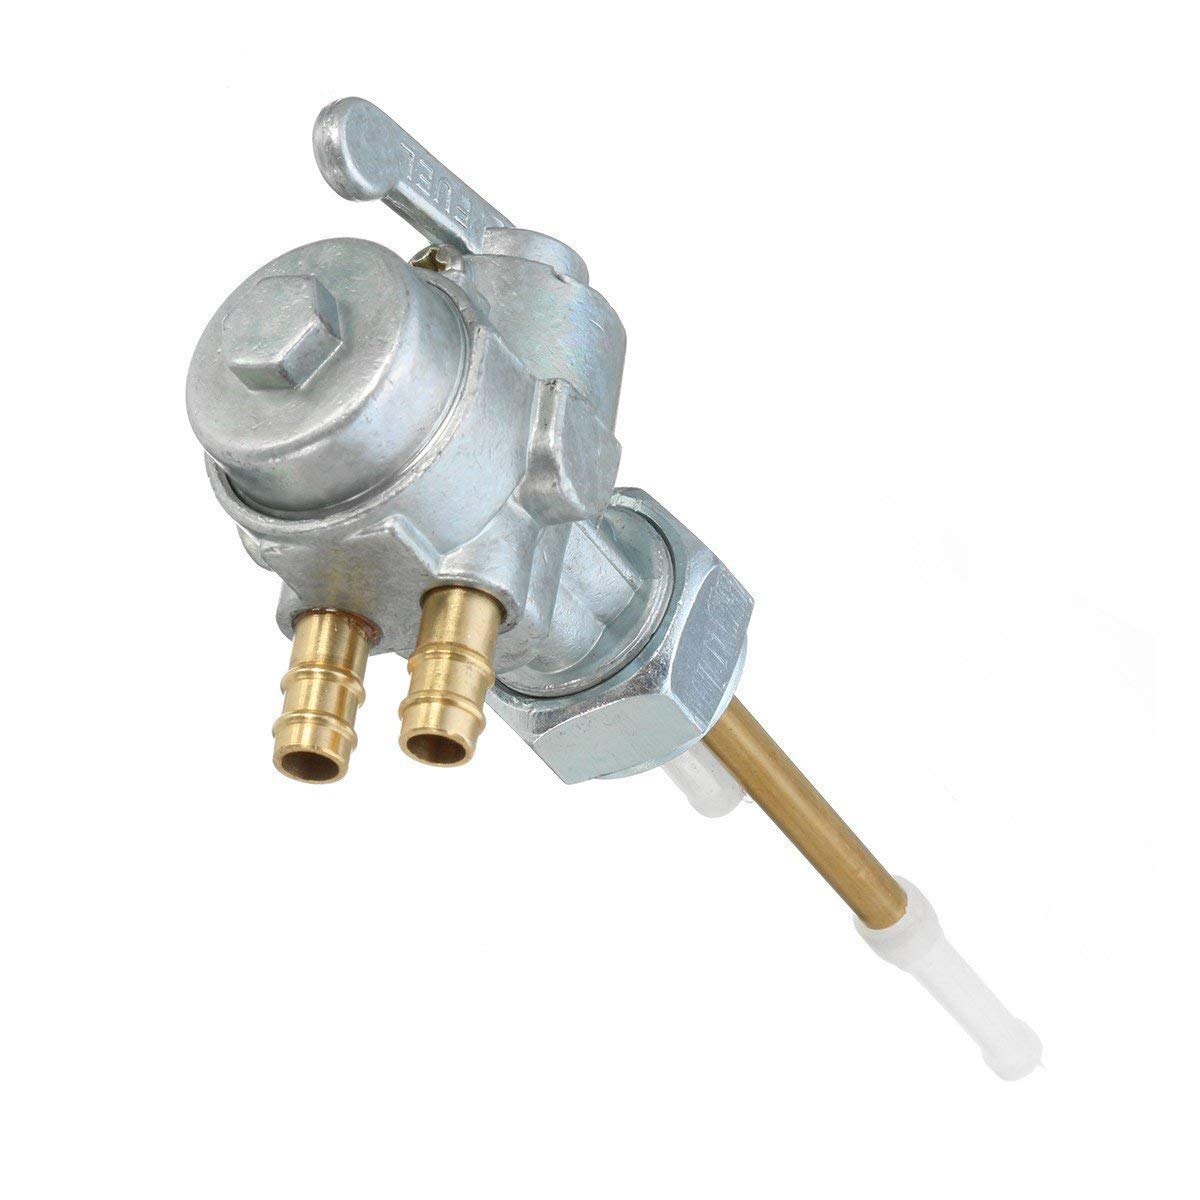 Replaces # 51023-055 New Fuel Tank Switch Valve Petcock For Kawasaki KZ900 KZ1000 A1SS A7SS C1 Z1